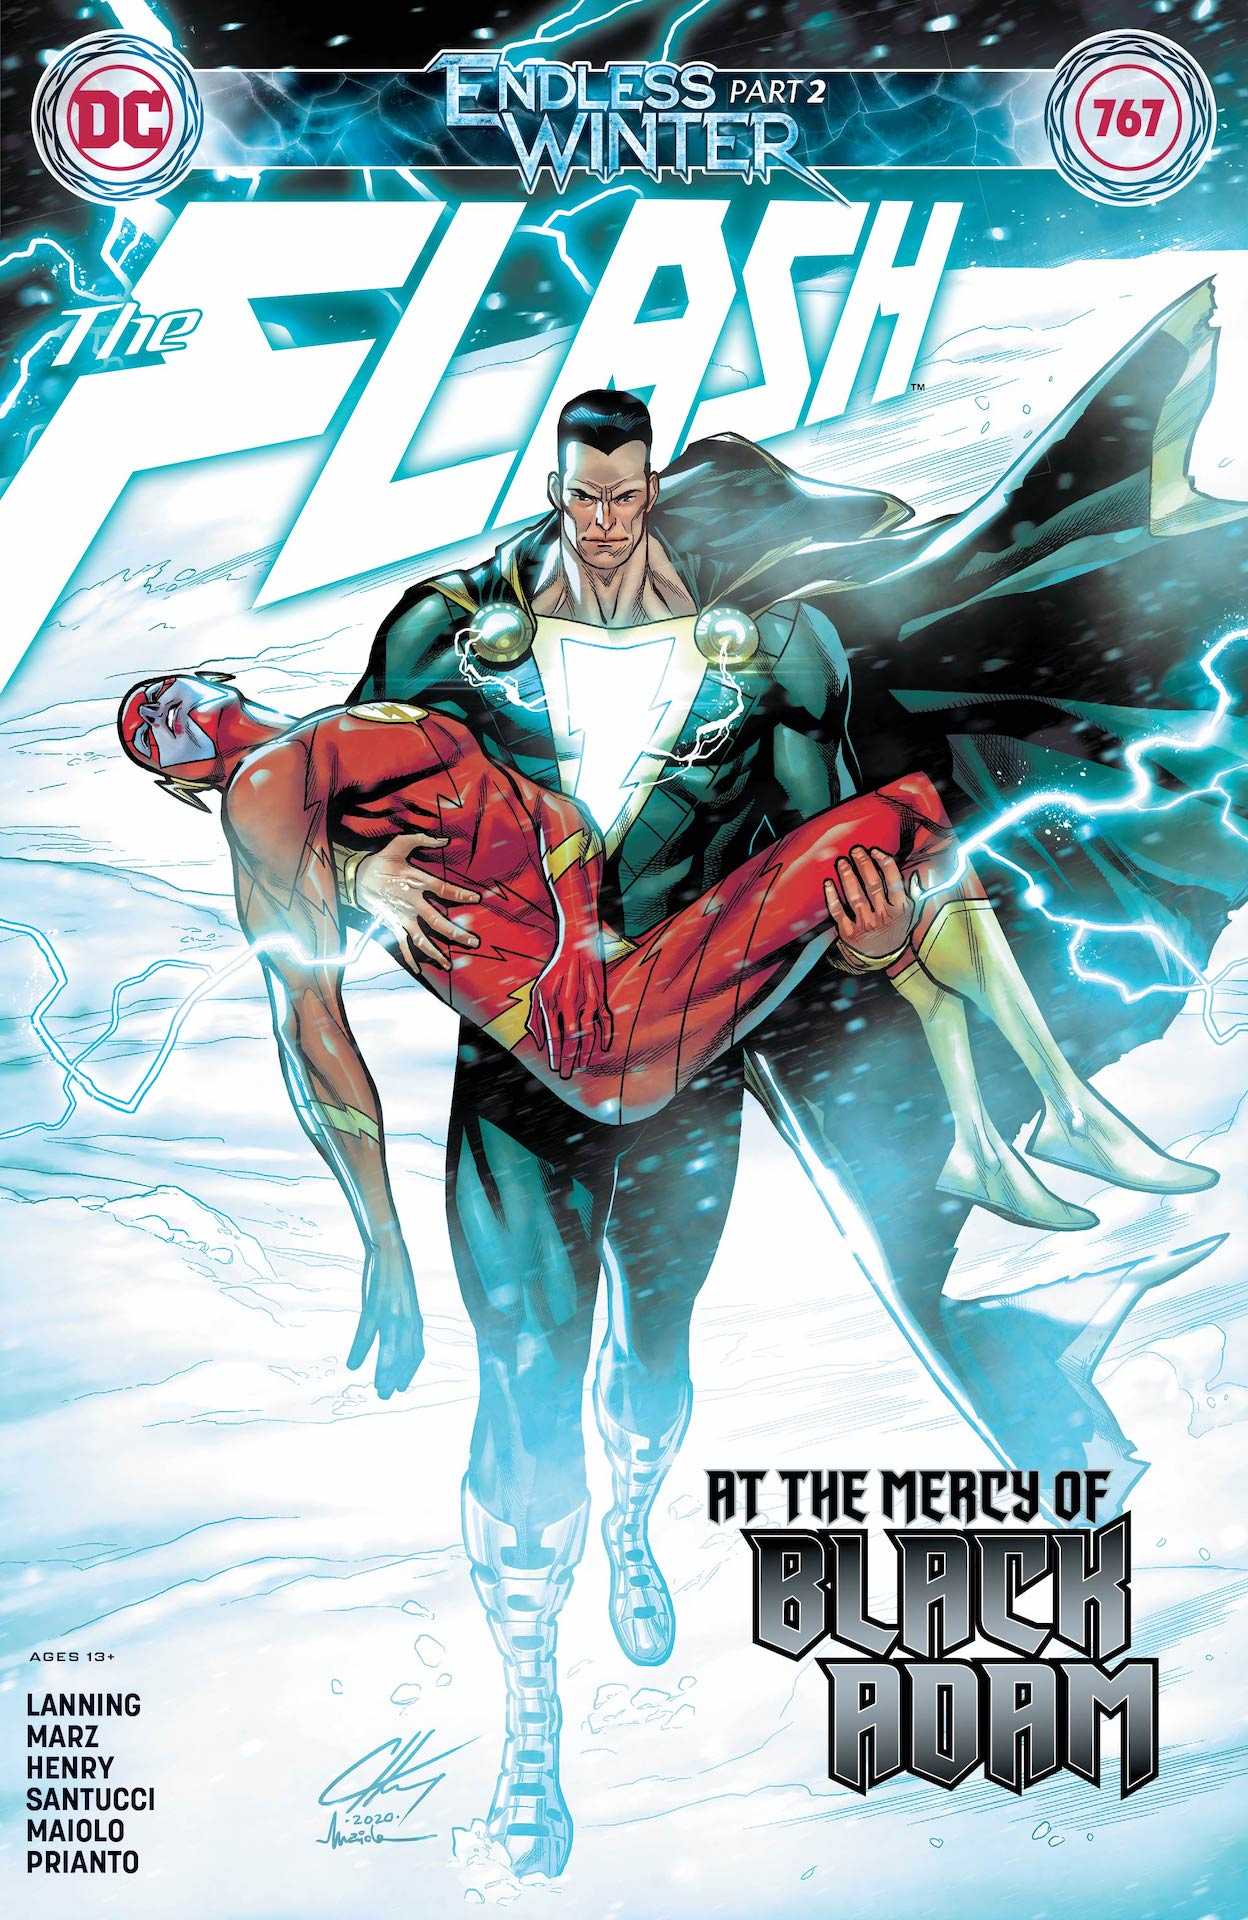 DC Preview: The Flash #767